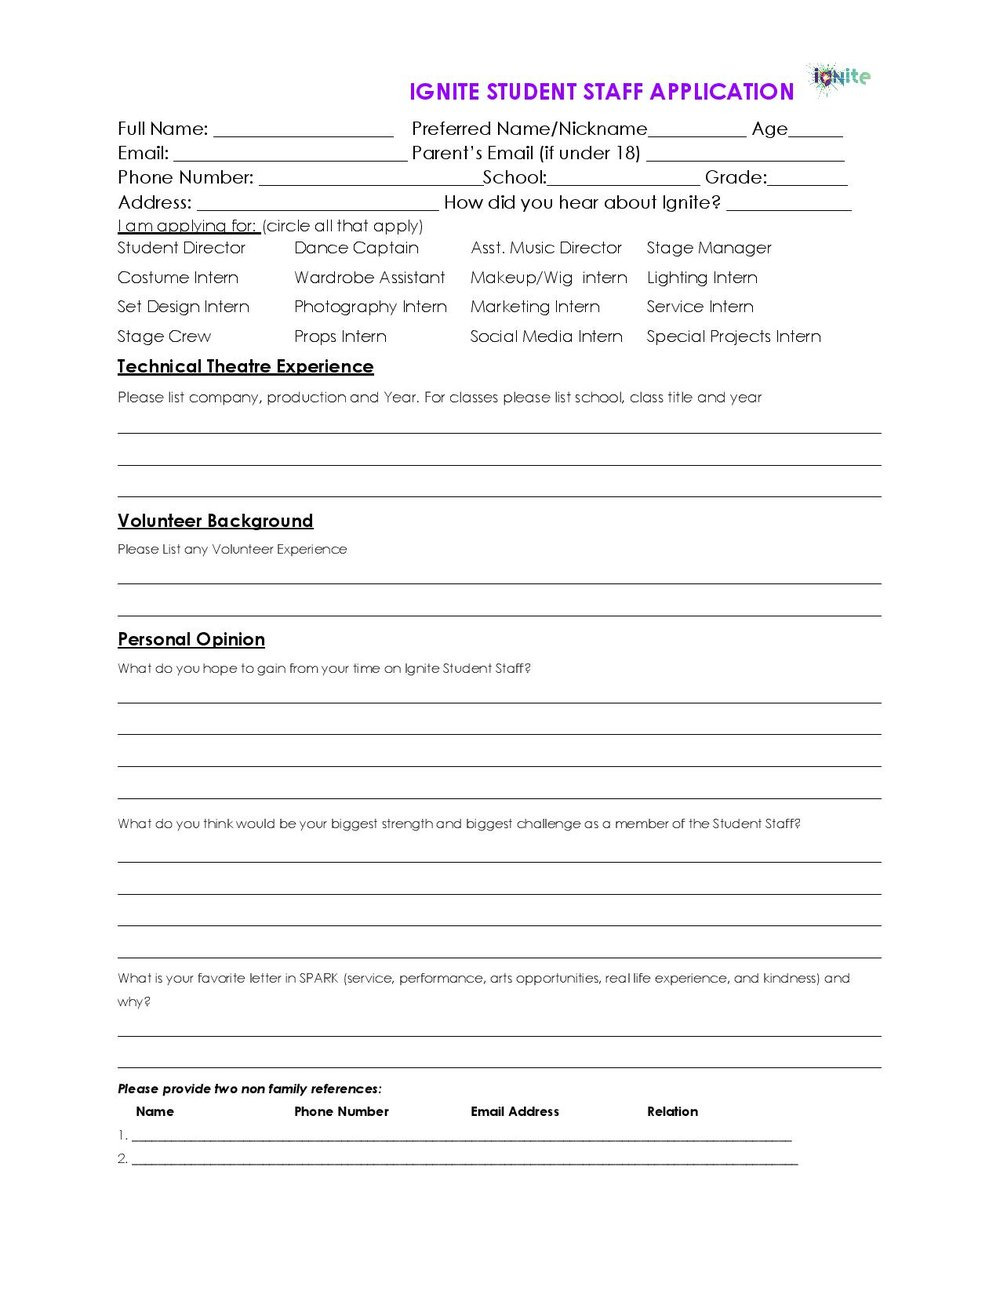 Student Staff Application (1)-page-001.jpg